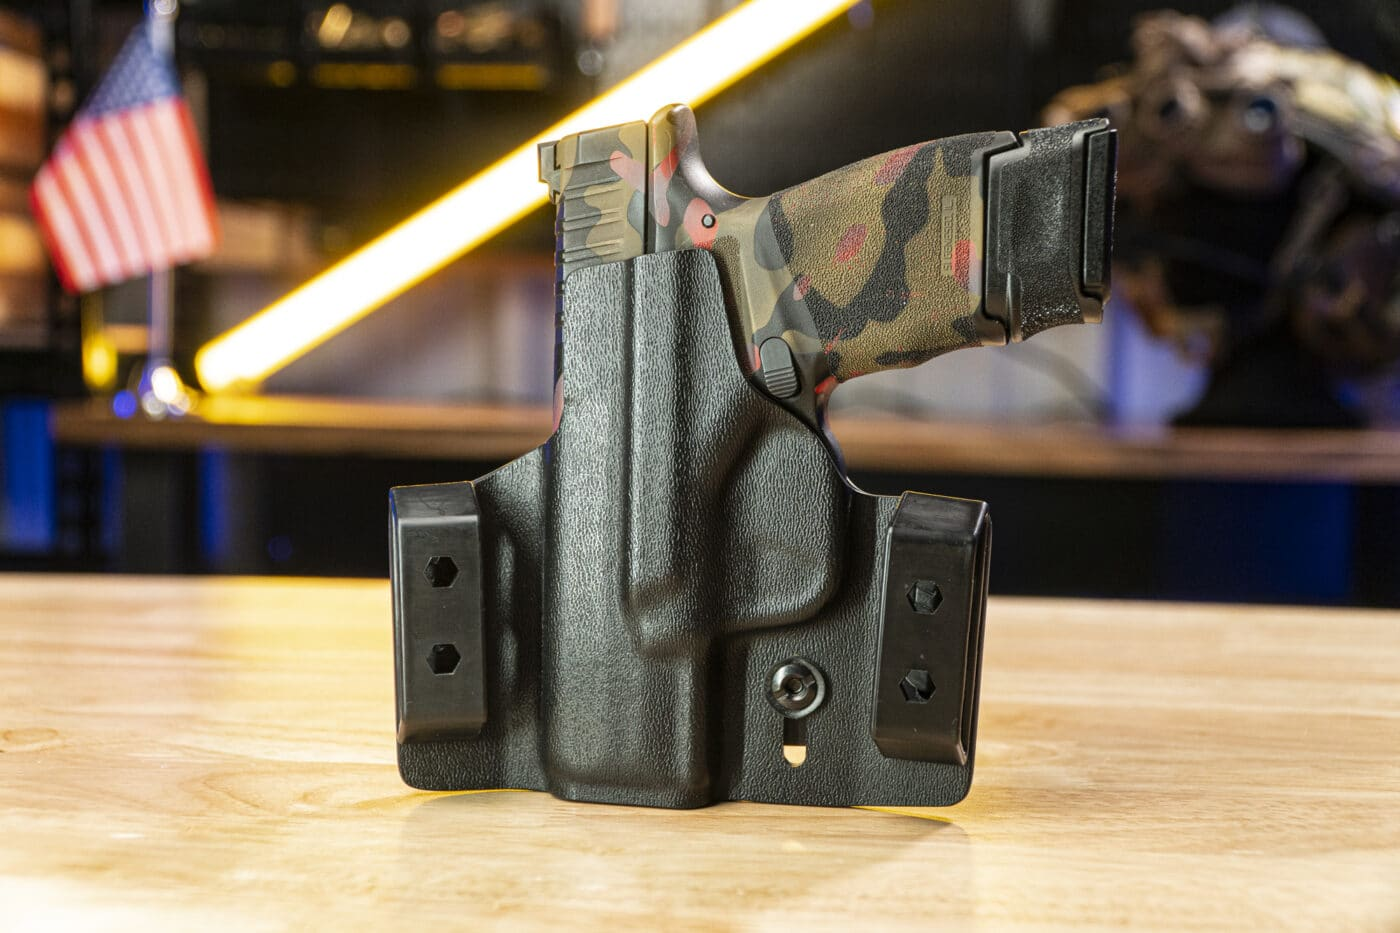 Tulster Contour holster with Hellcat pistol